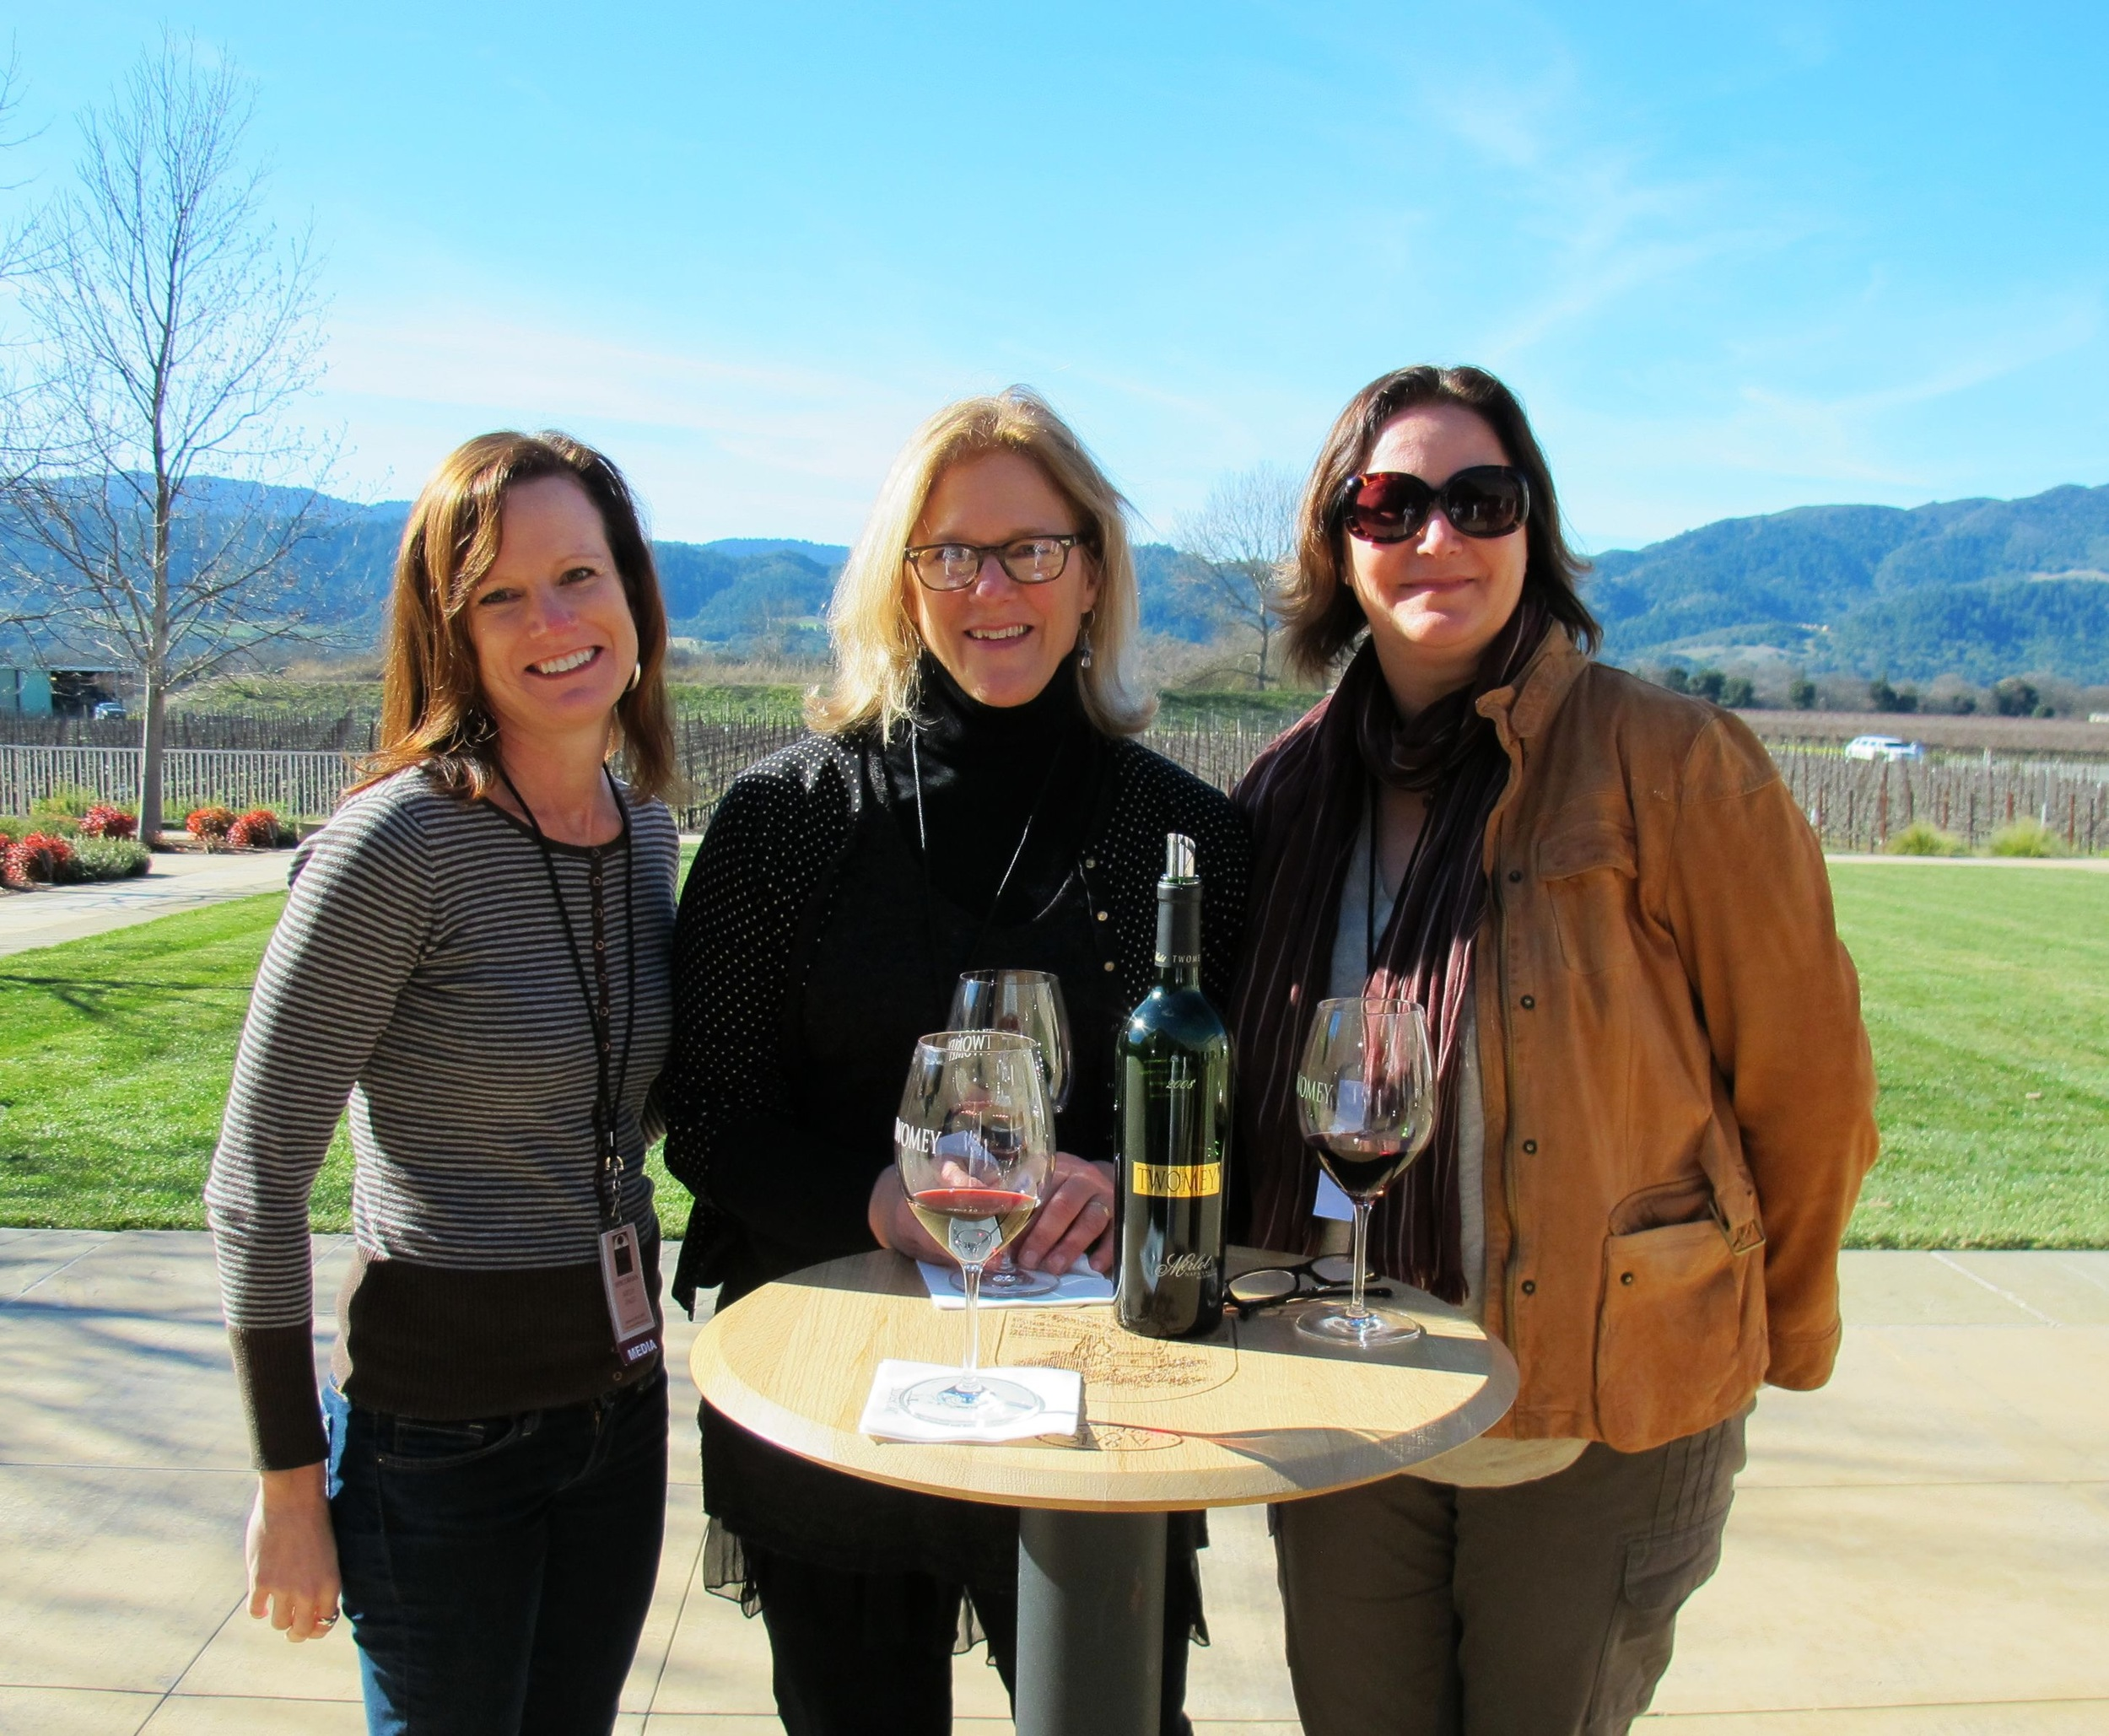 Wine tasting with Doni Belau (far right) in Napa Valley